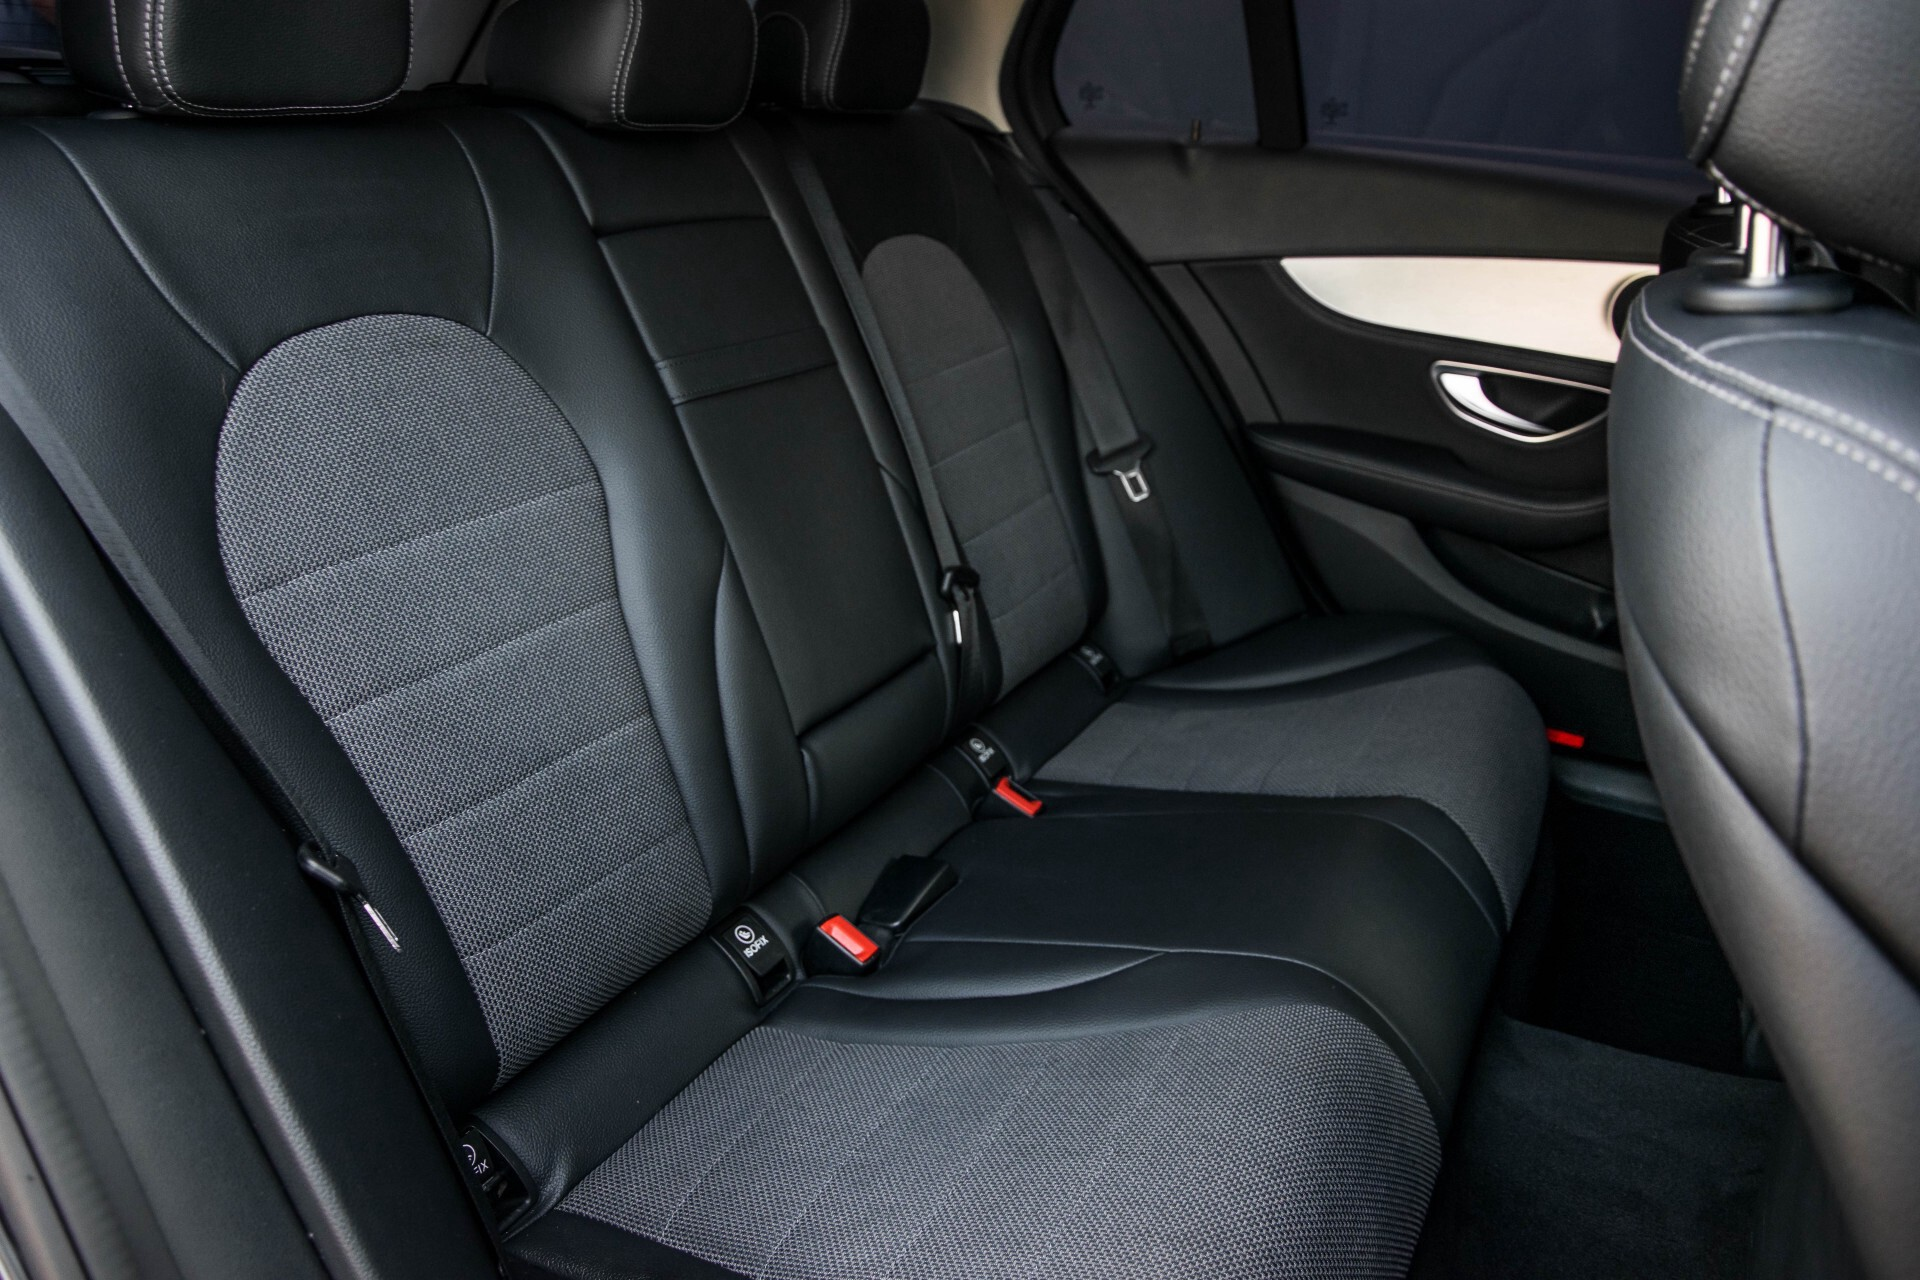 Mercedes-Benz C-Klasse Estate 180 Avantgarde LED/Navi/Privacyglas/Pts/Aut-koffer Aut7 Foto 4